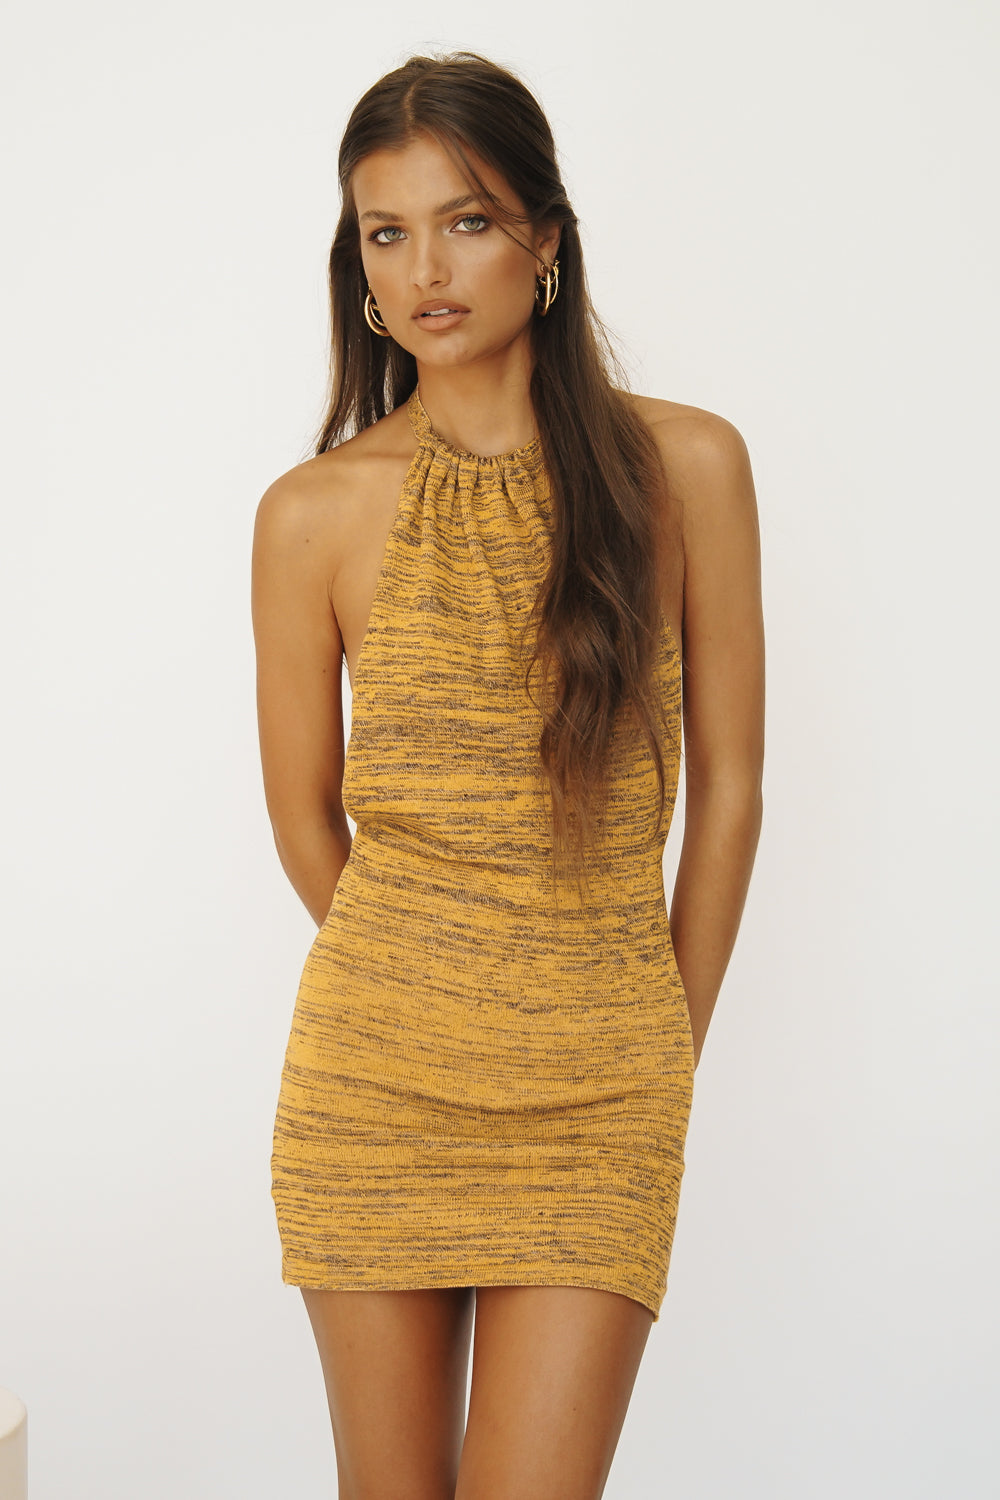 Beach House Backless Knit Mini Dress // Mustard